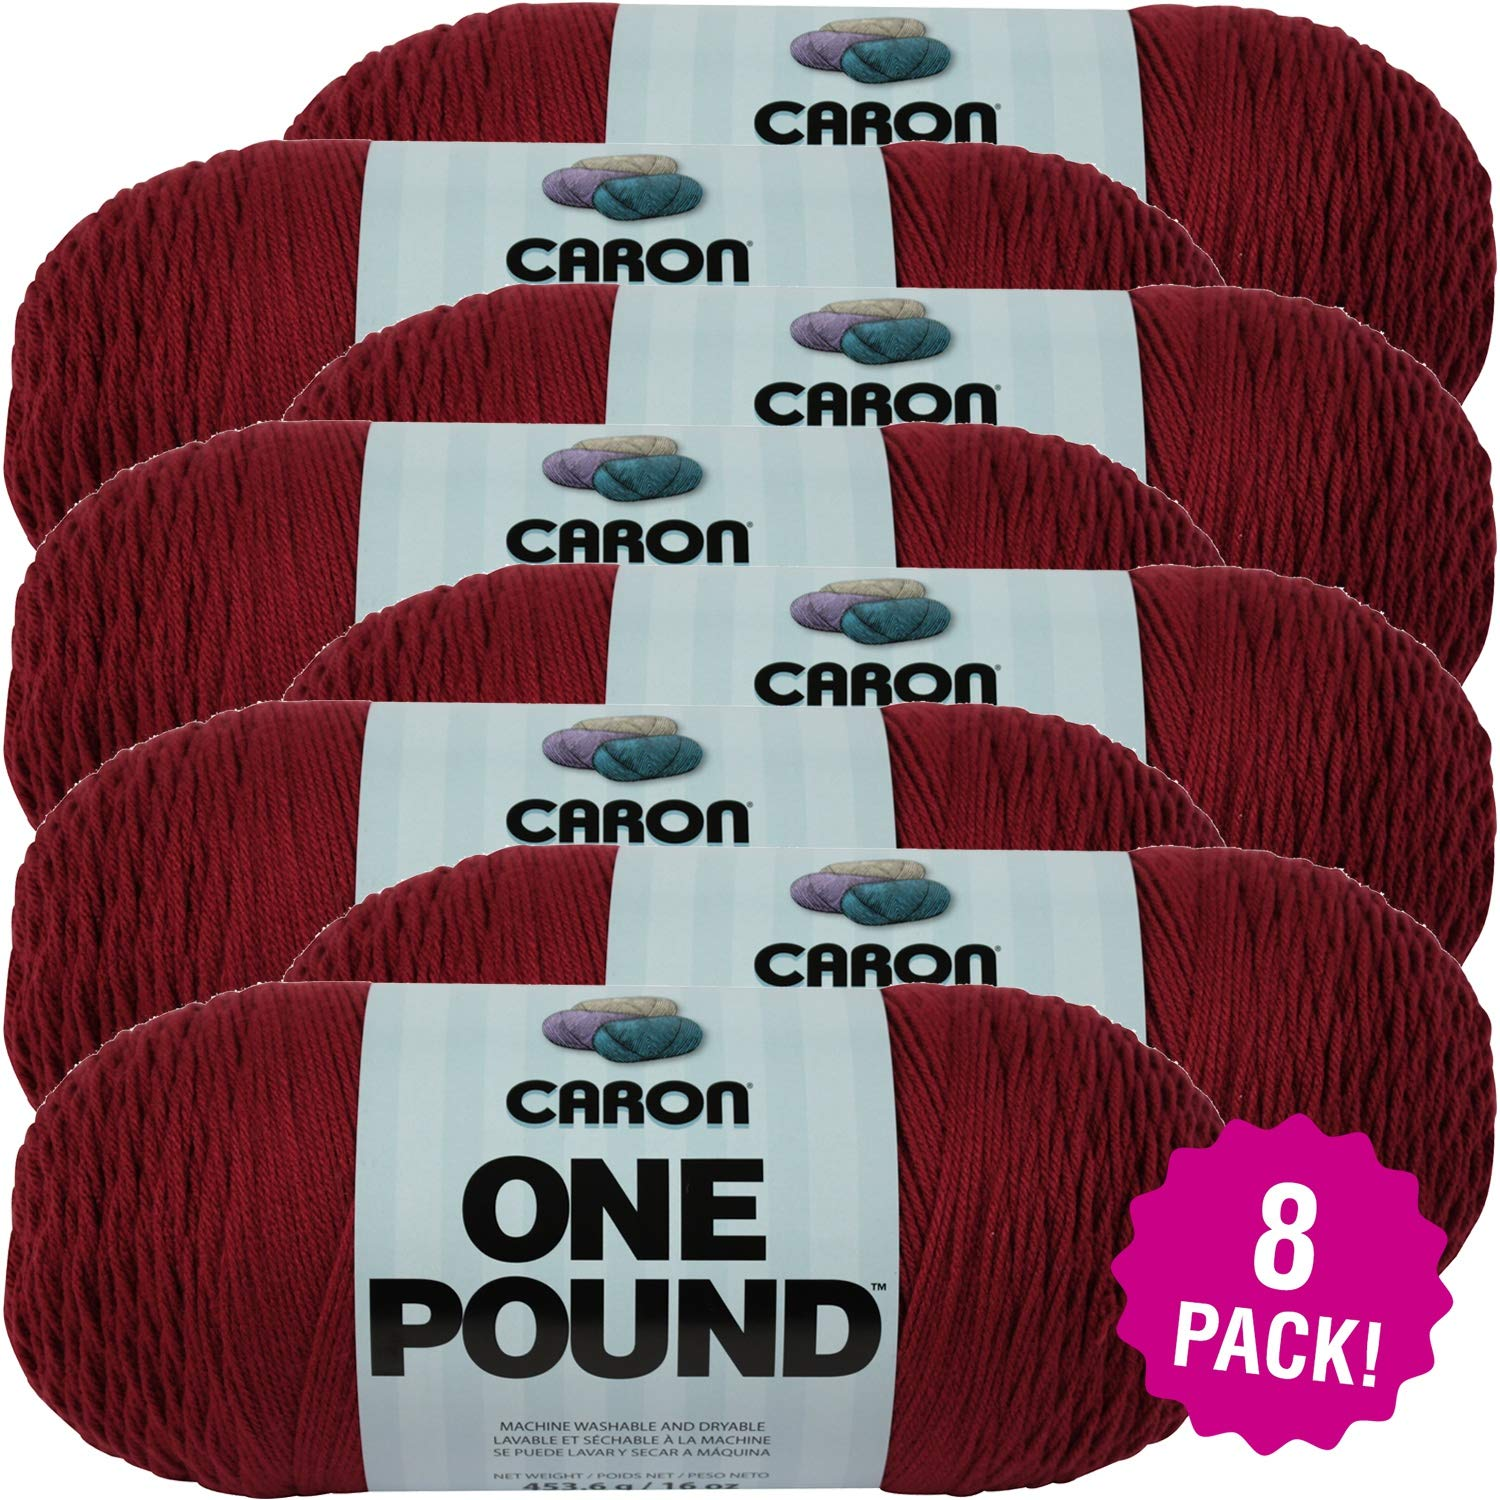 Caron 99554 One Pound Yarn-Country Rose, Multipack of 8, Pack